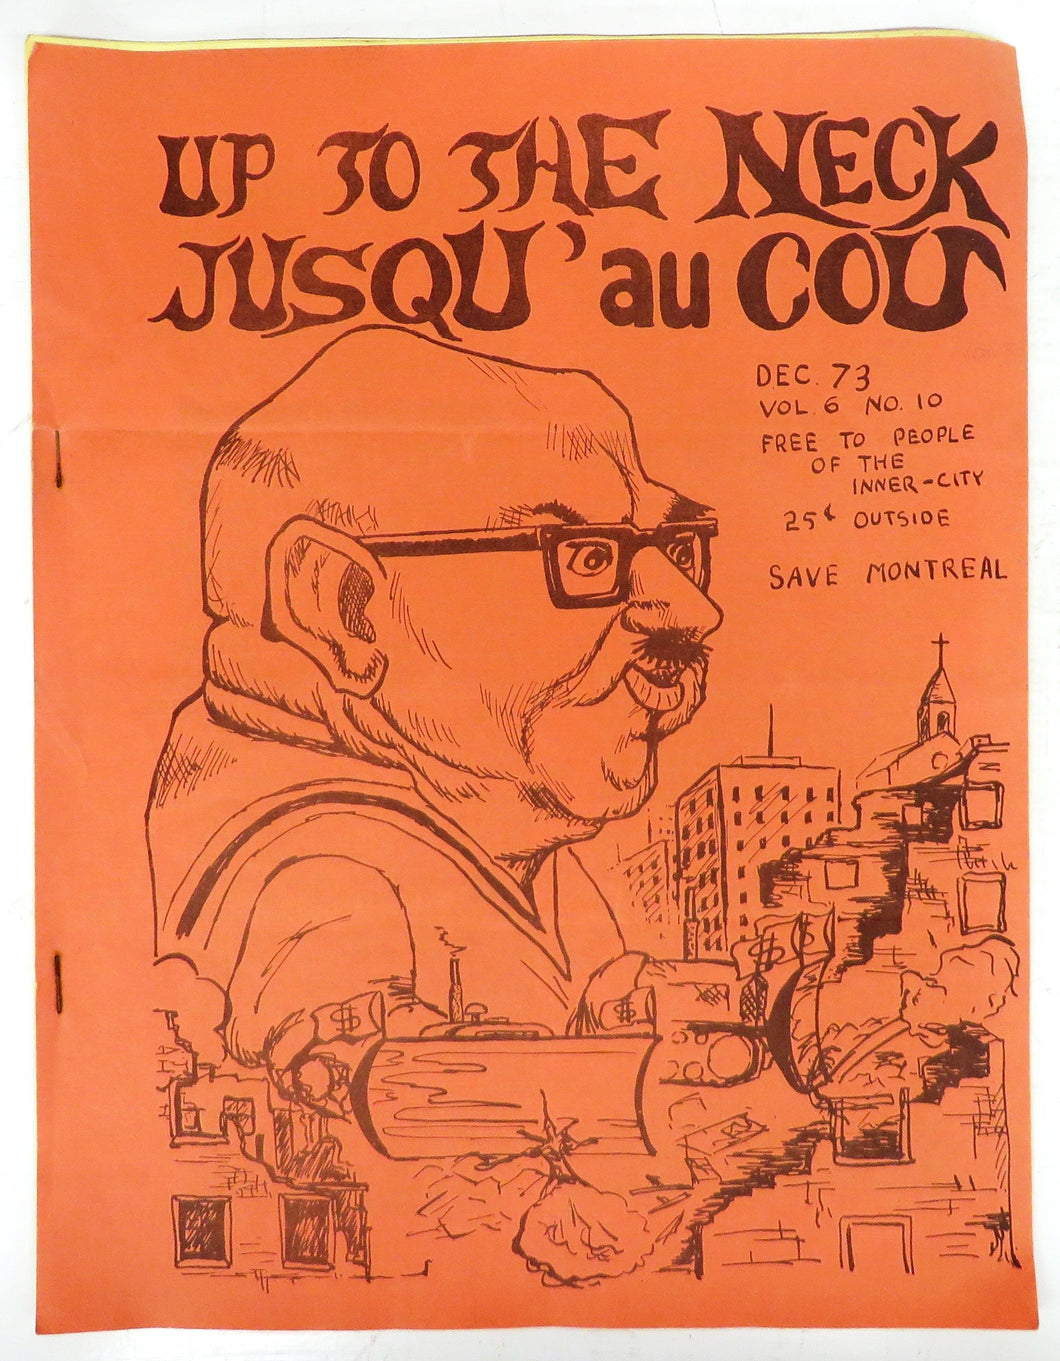 Up To The Neck; Jusqu'au Cou Dec. '73